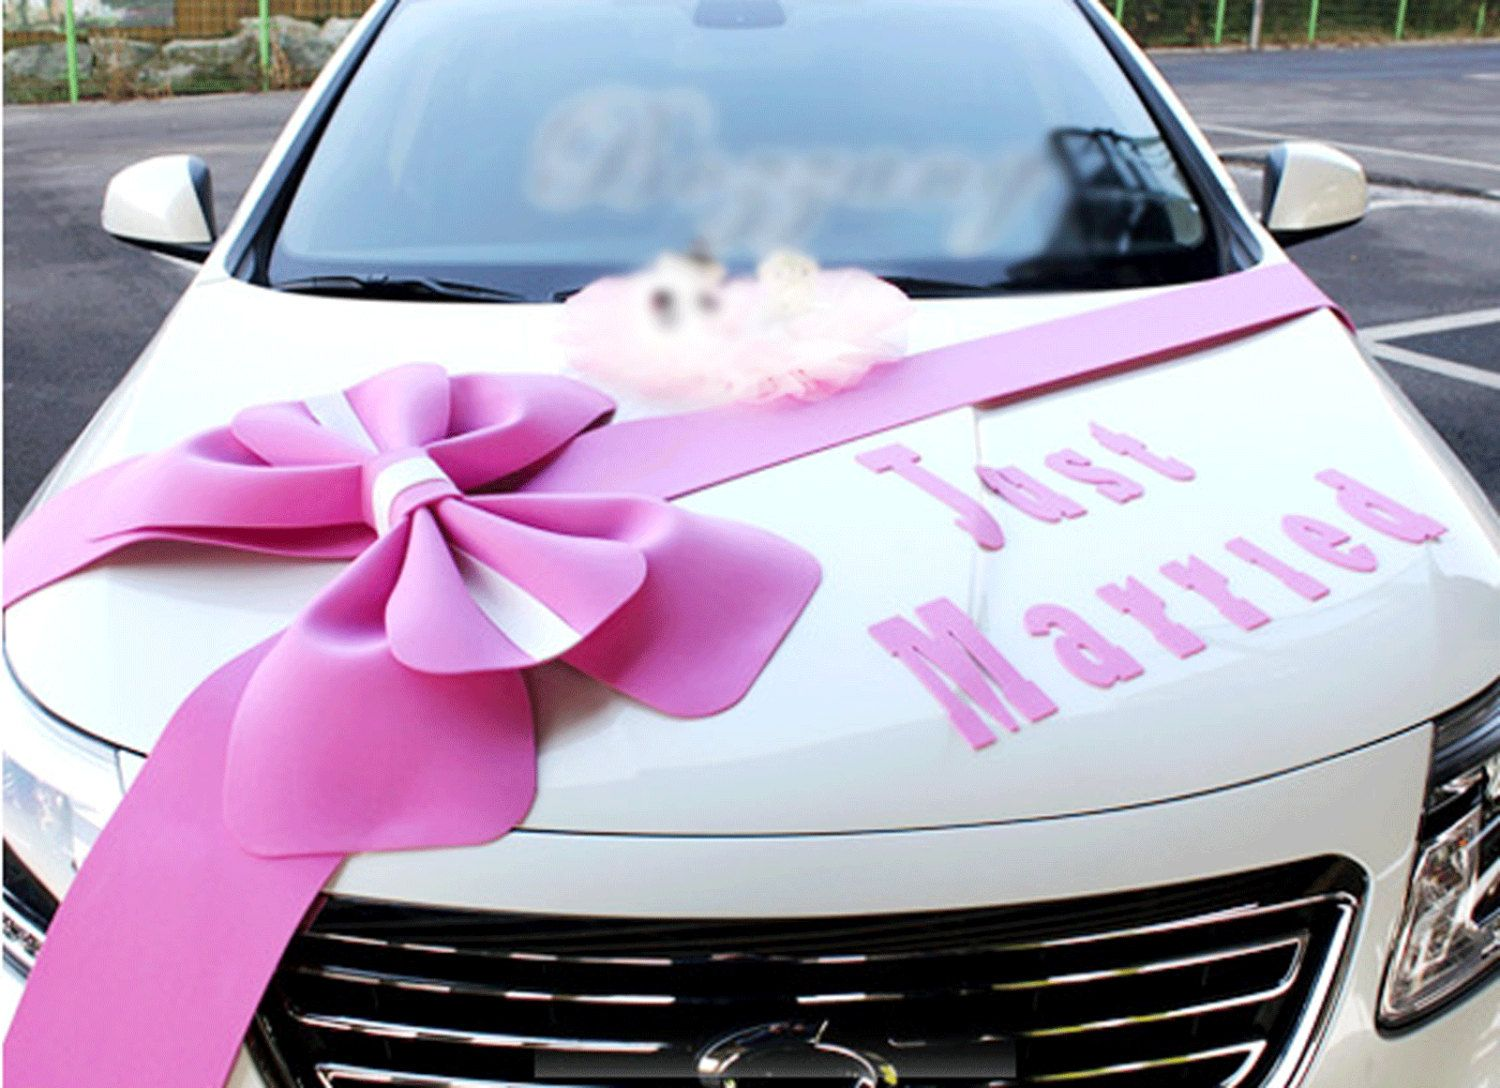 Wedding car decorations just married  Wedding car Decorations kit Big Ribbons Pink bows set Just Married